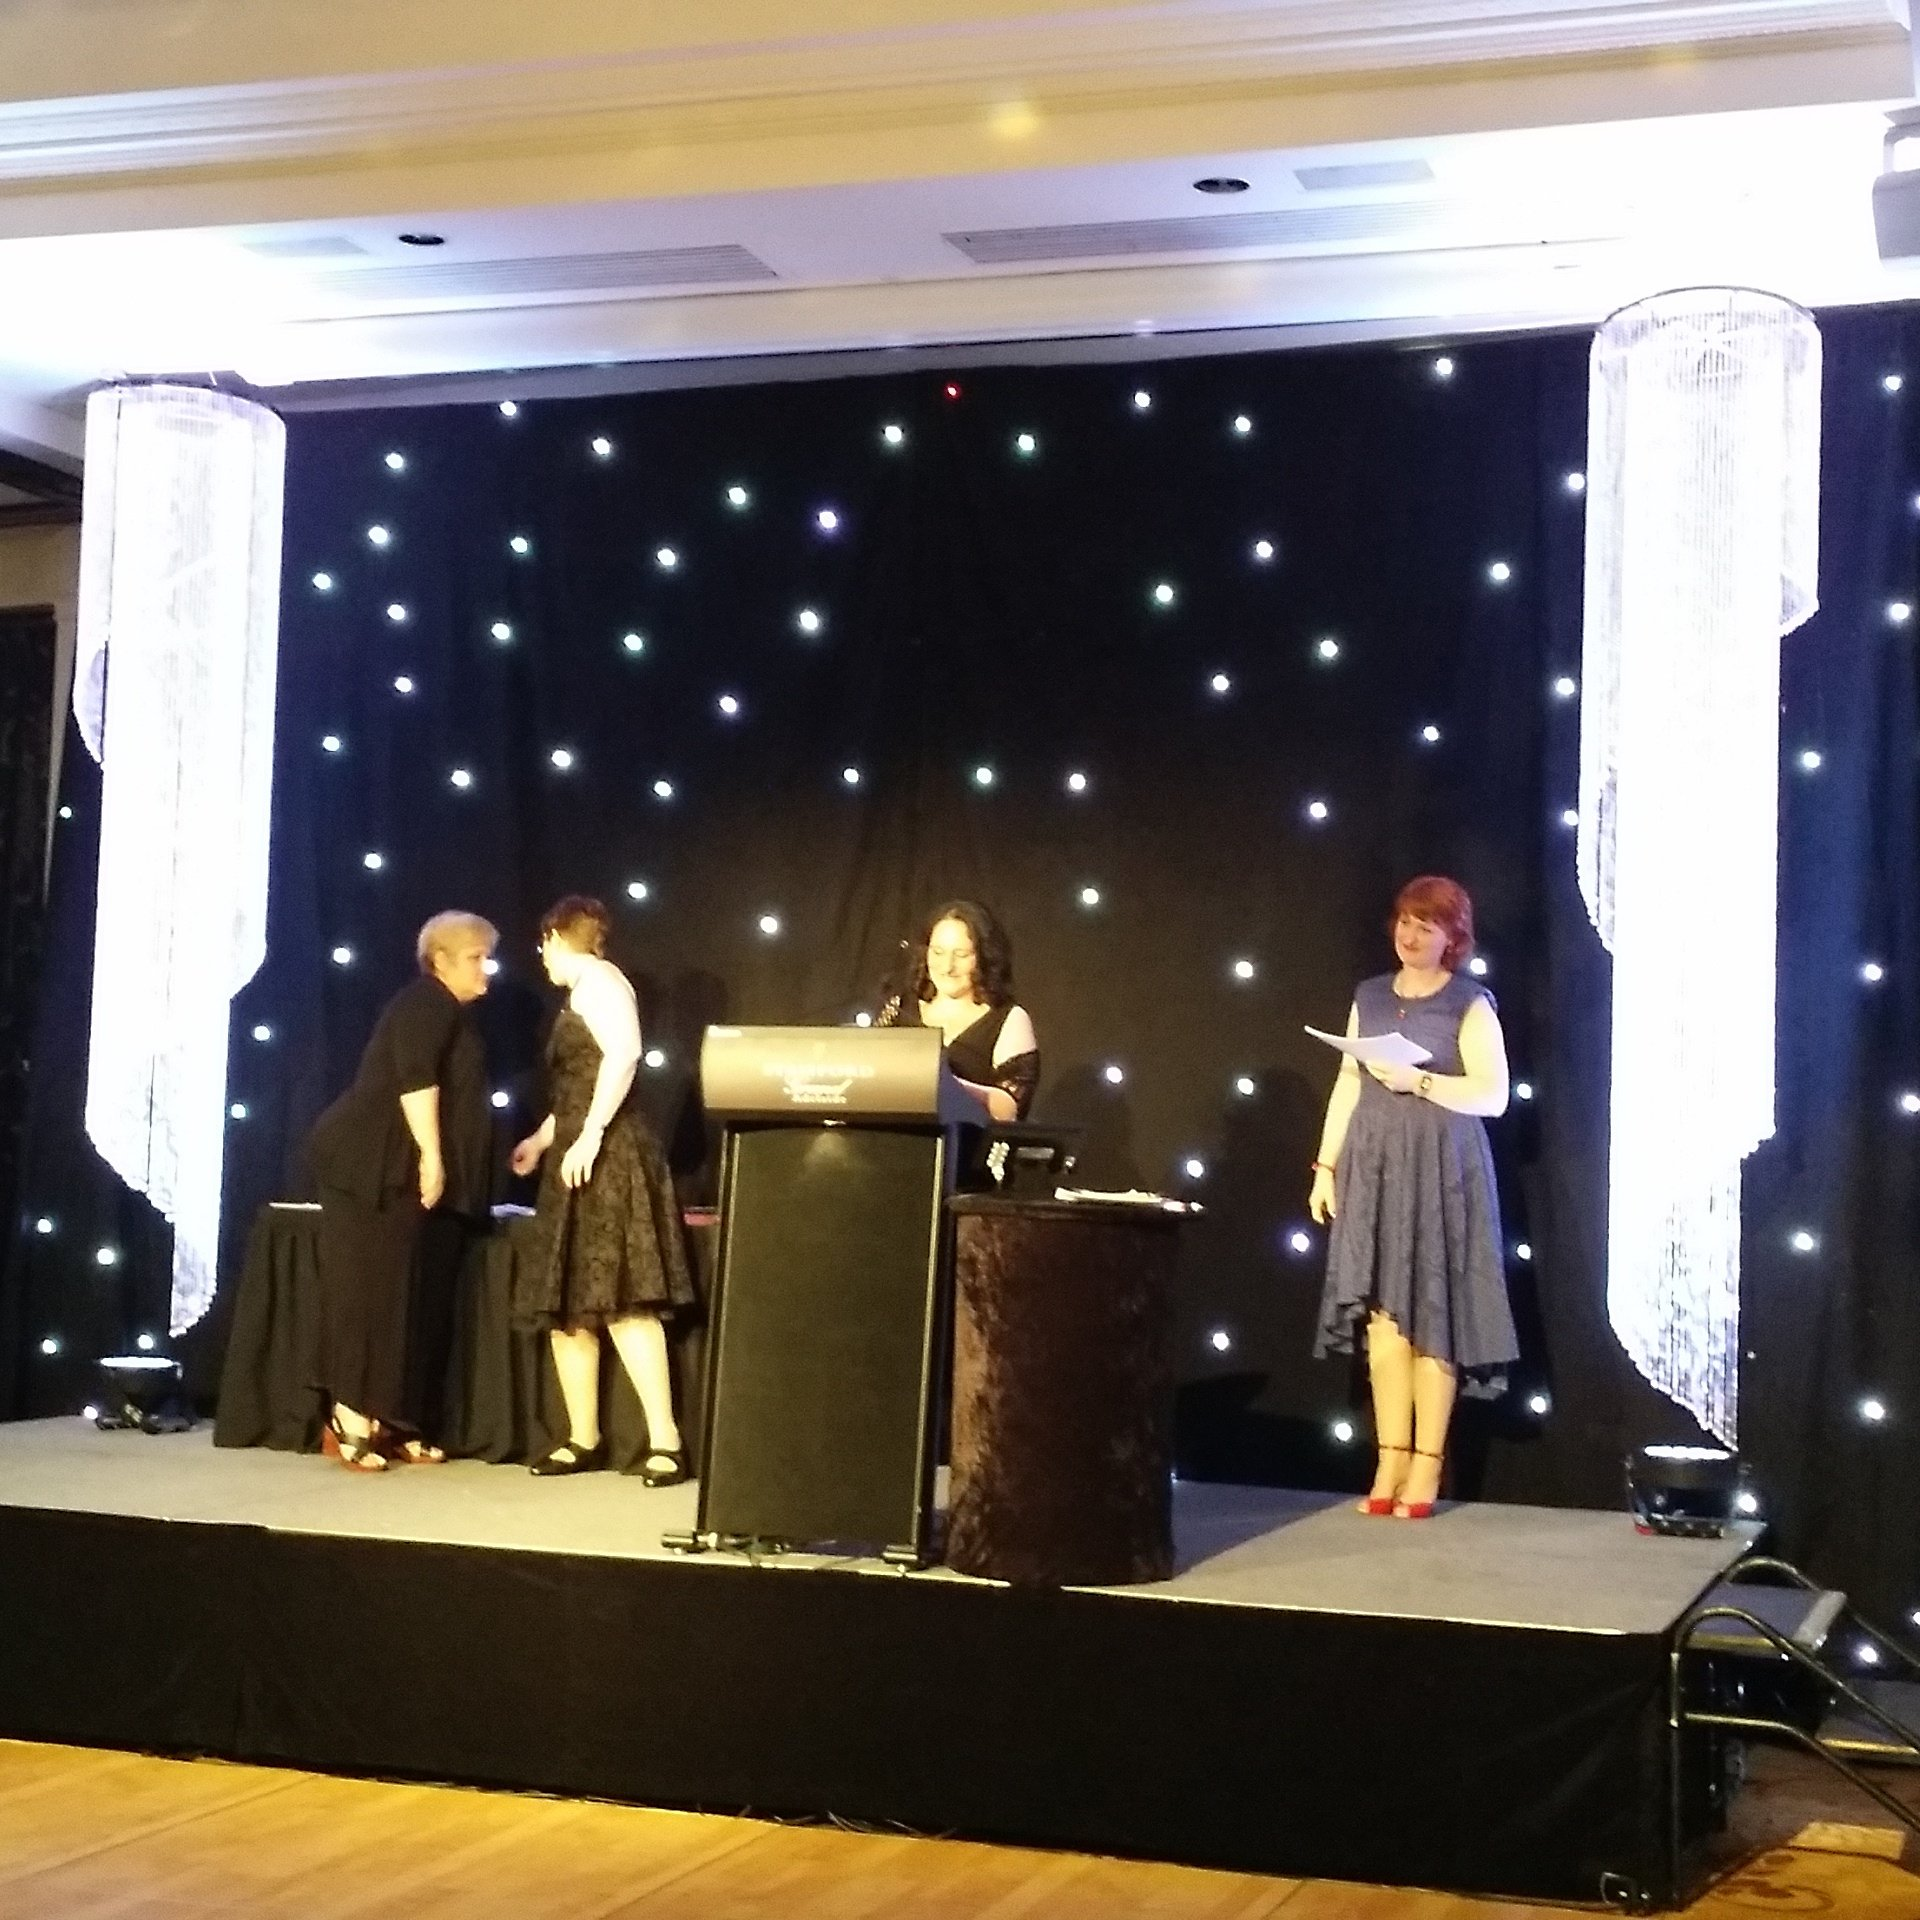 Congratulations to @msomerswriter from @TheMRWG for winning the RuBY Award! #RWAus16 #romance #writers https://t.co/13nwvRvgLW